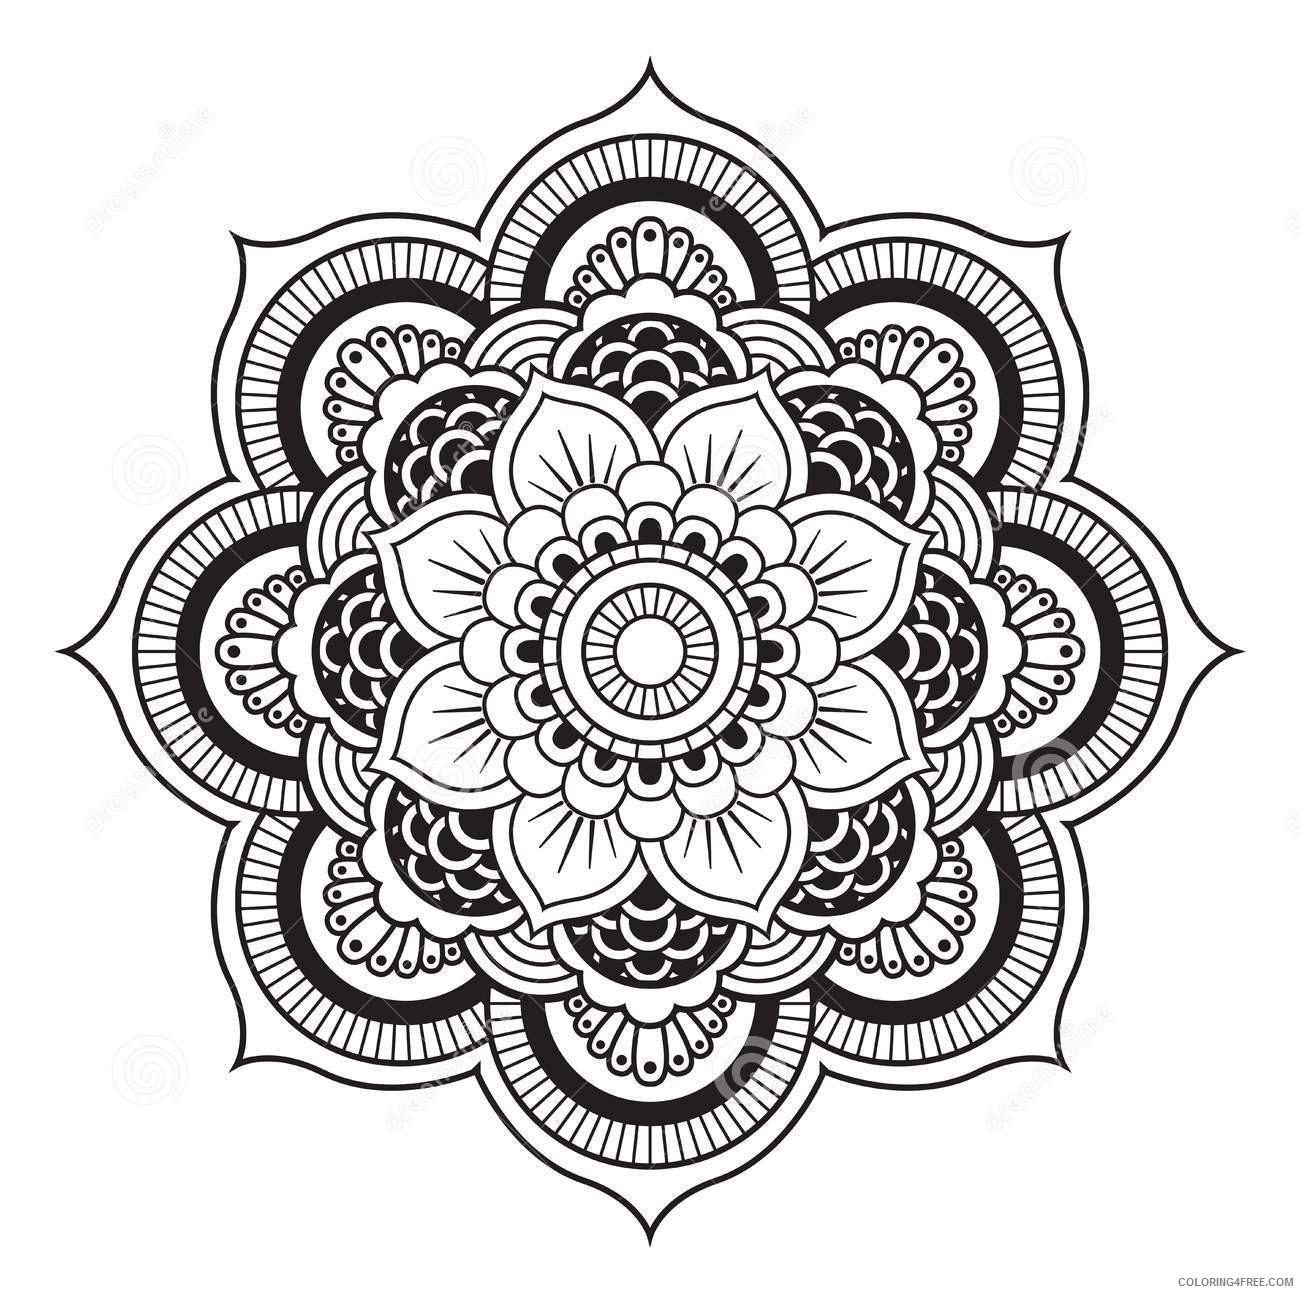 printable mandala coloring pages for adults Coloring4free